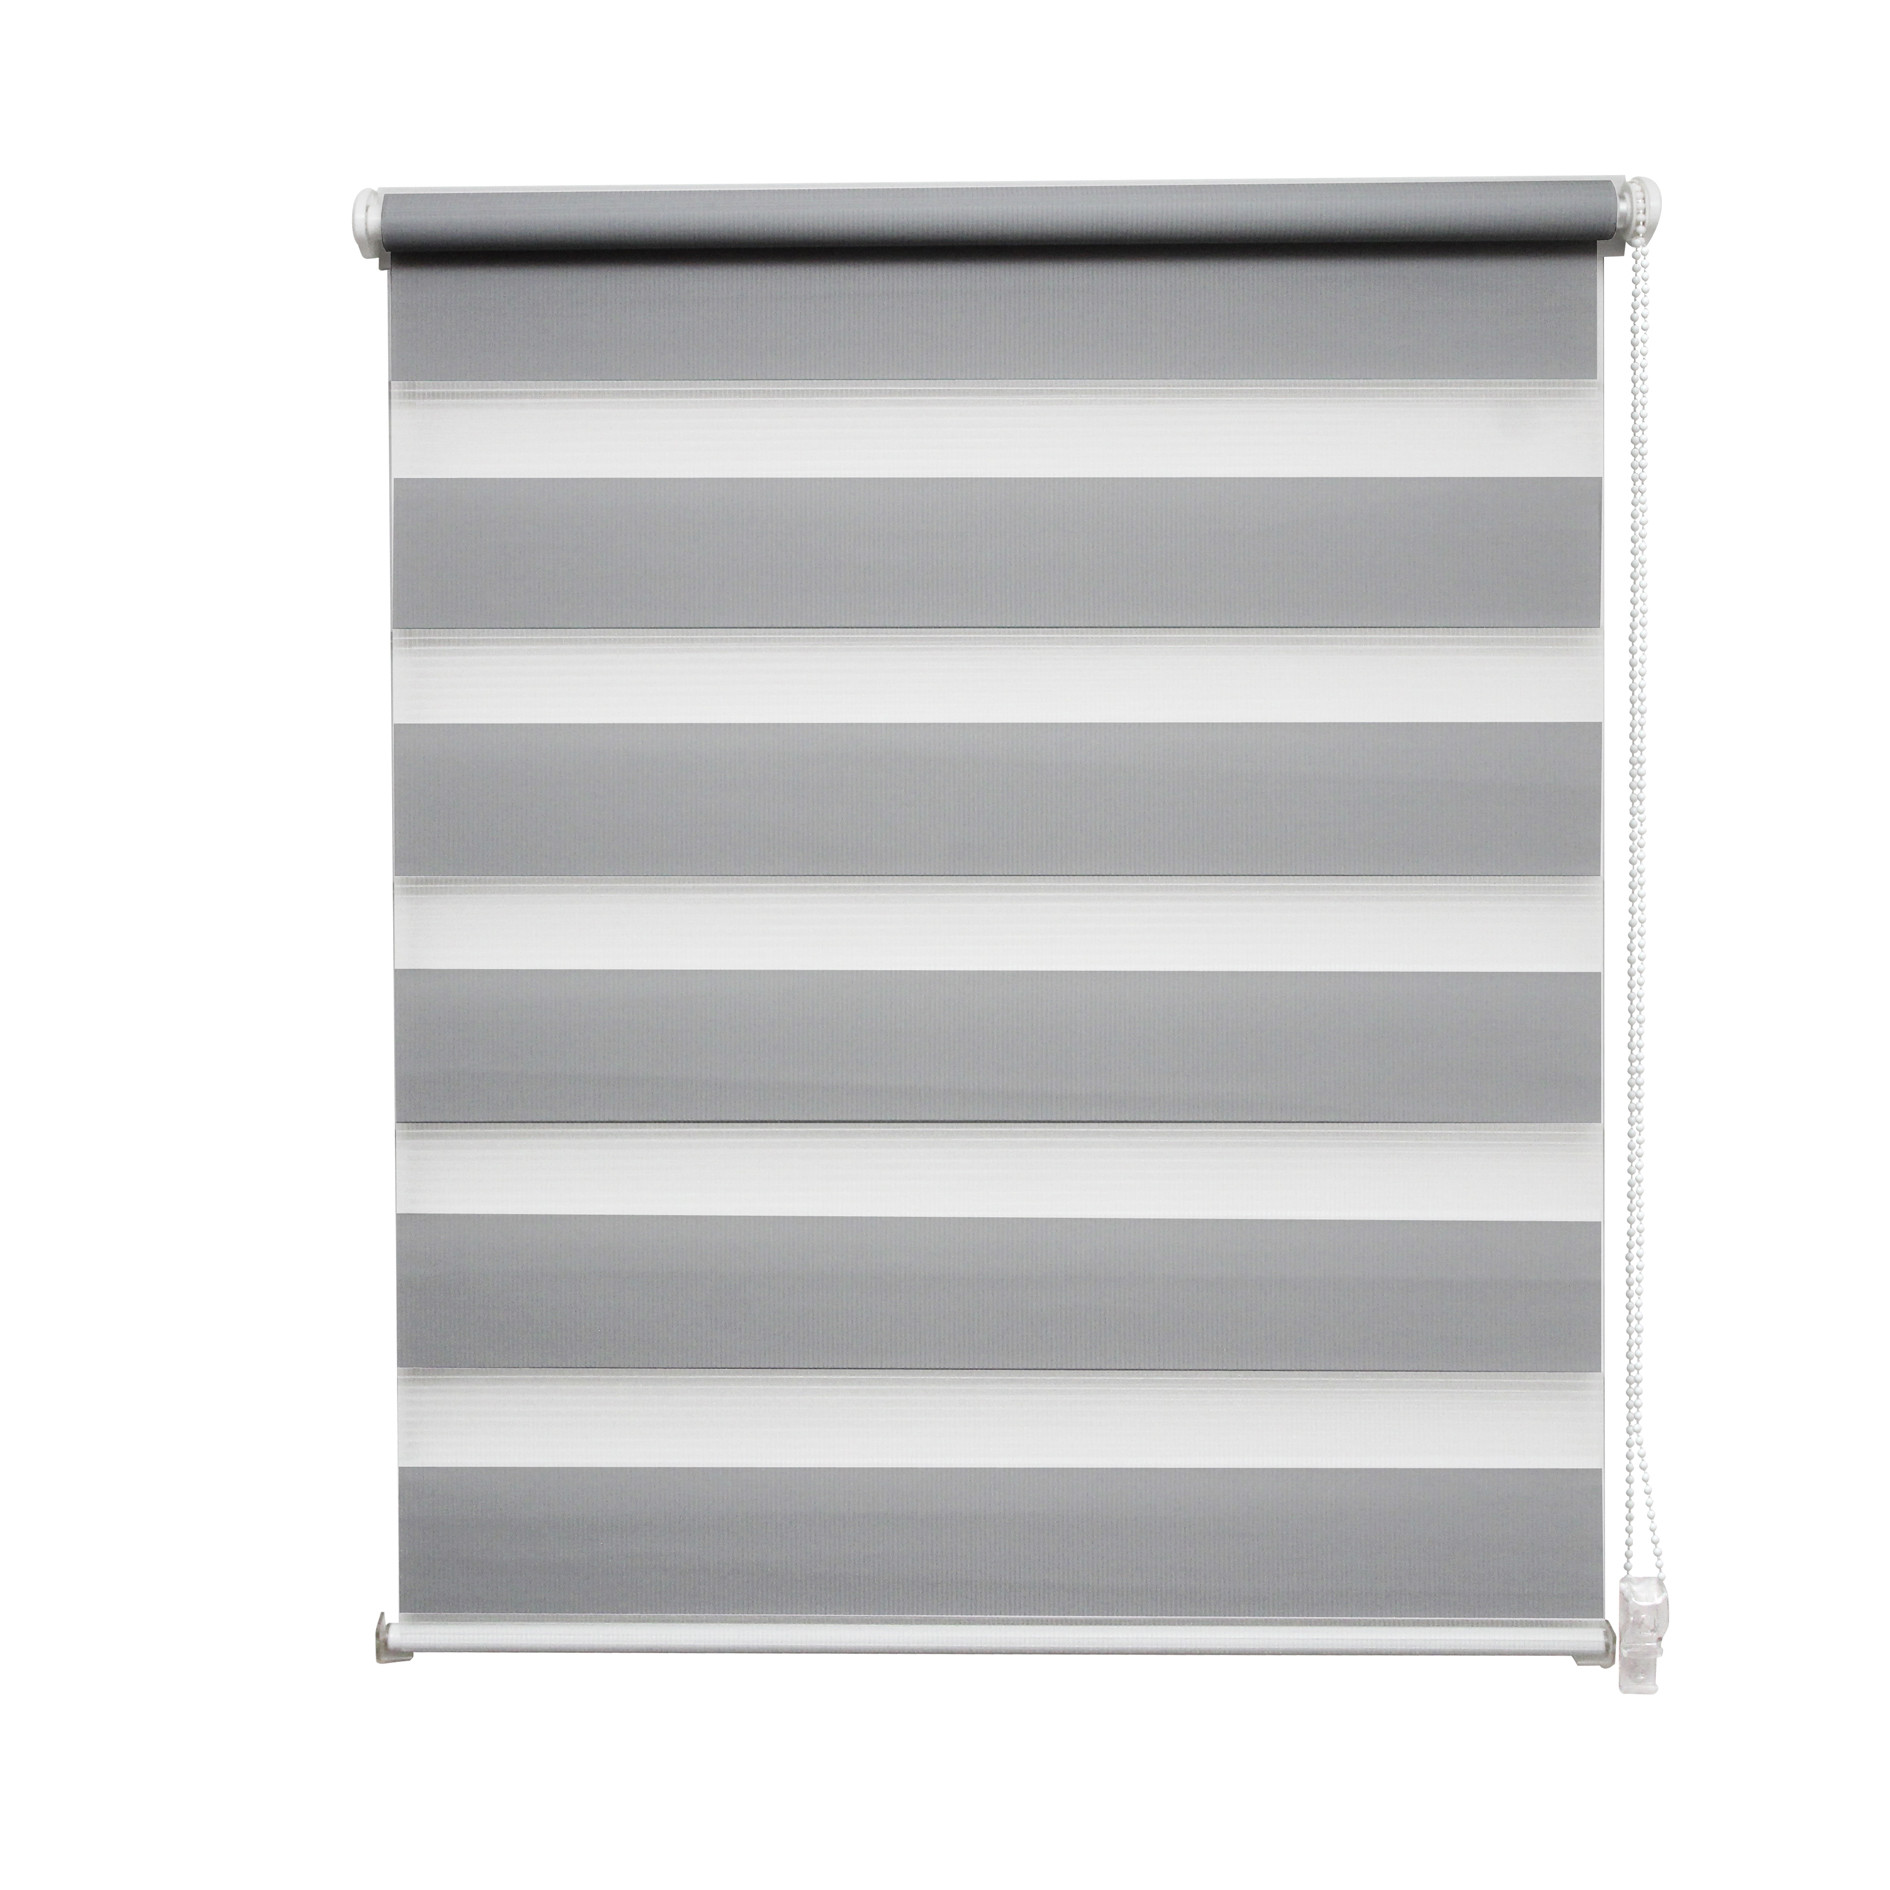 Menards Landscape Rock Menards Window Blinds Outdoor Blinds For Patio